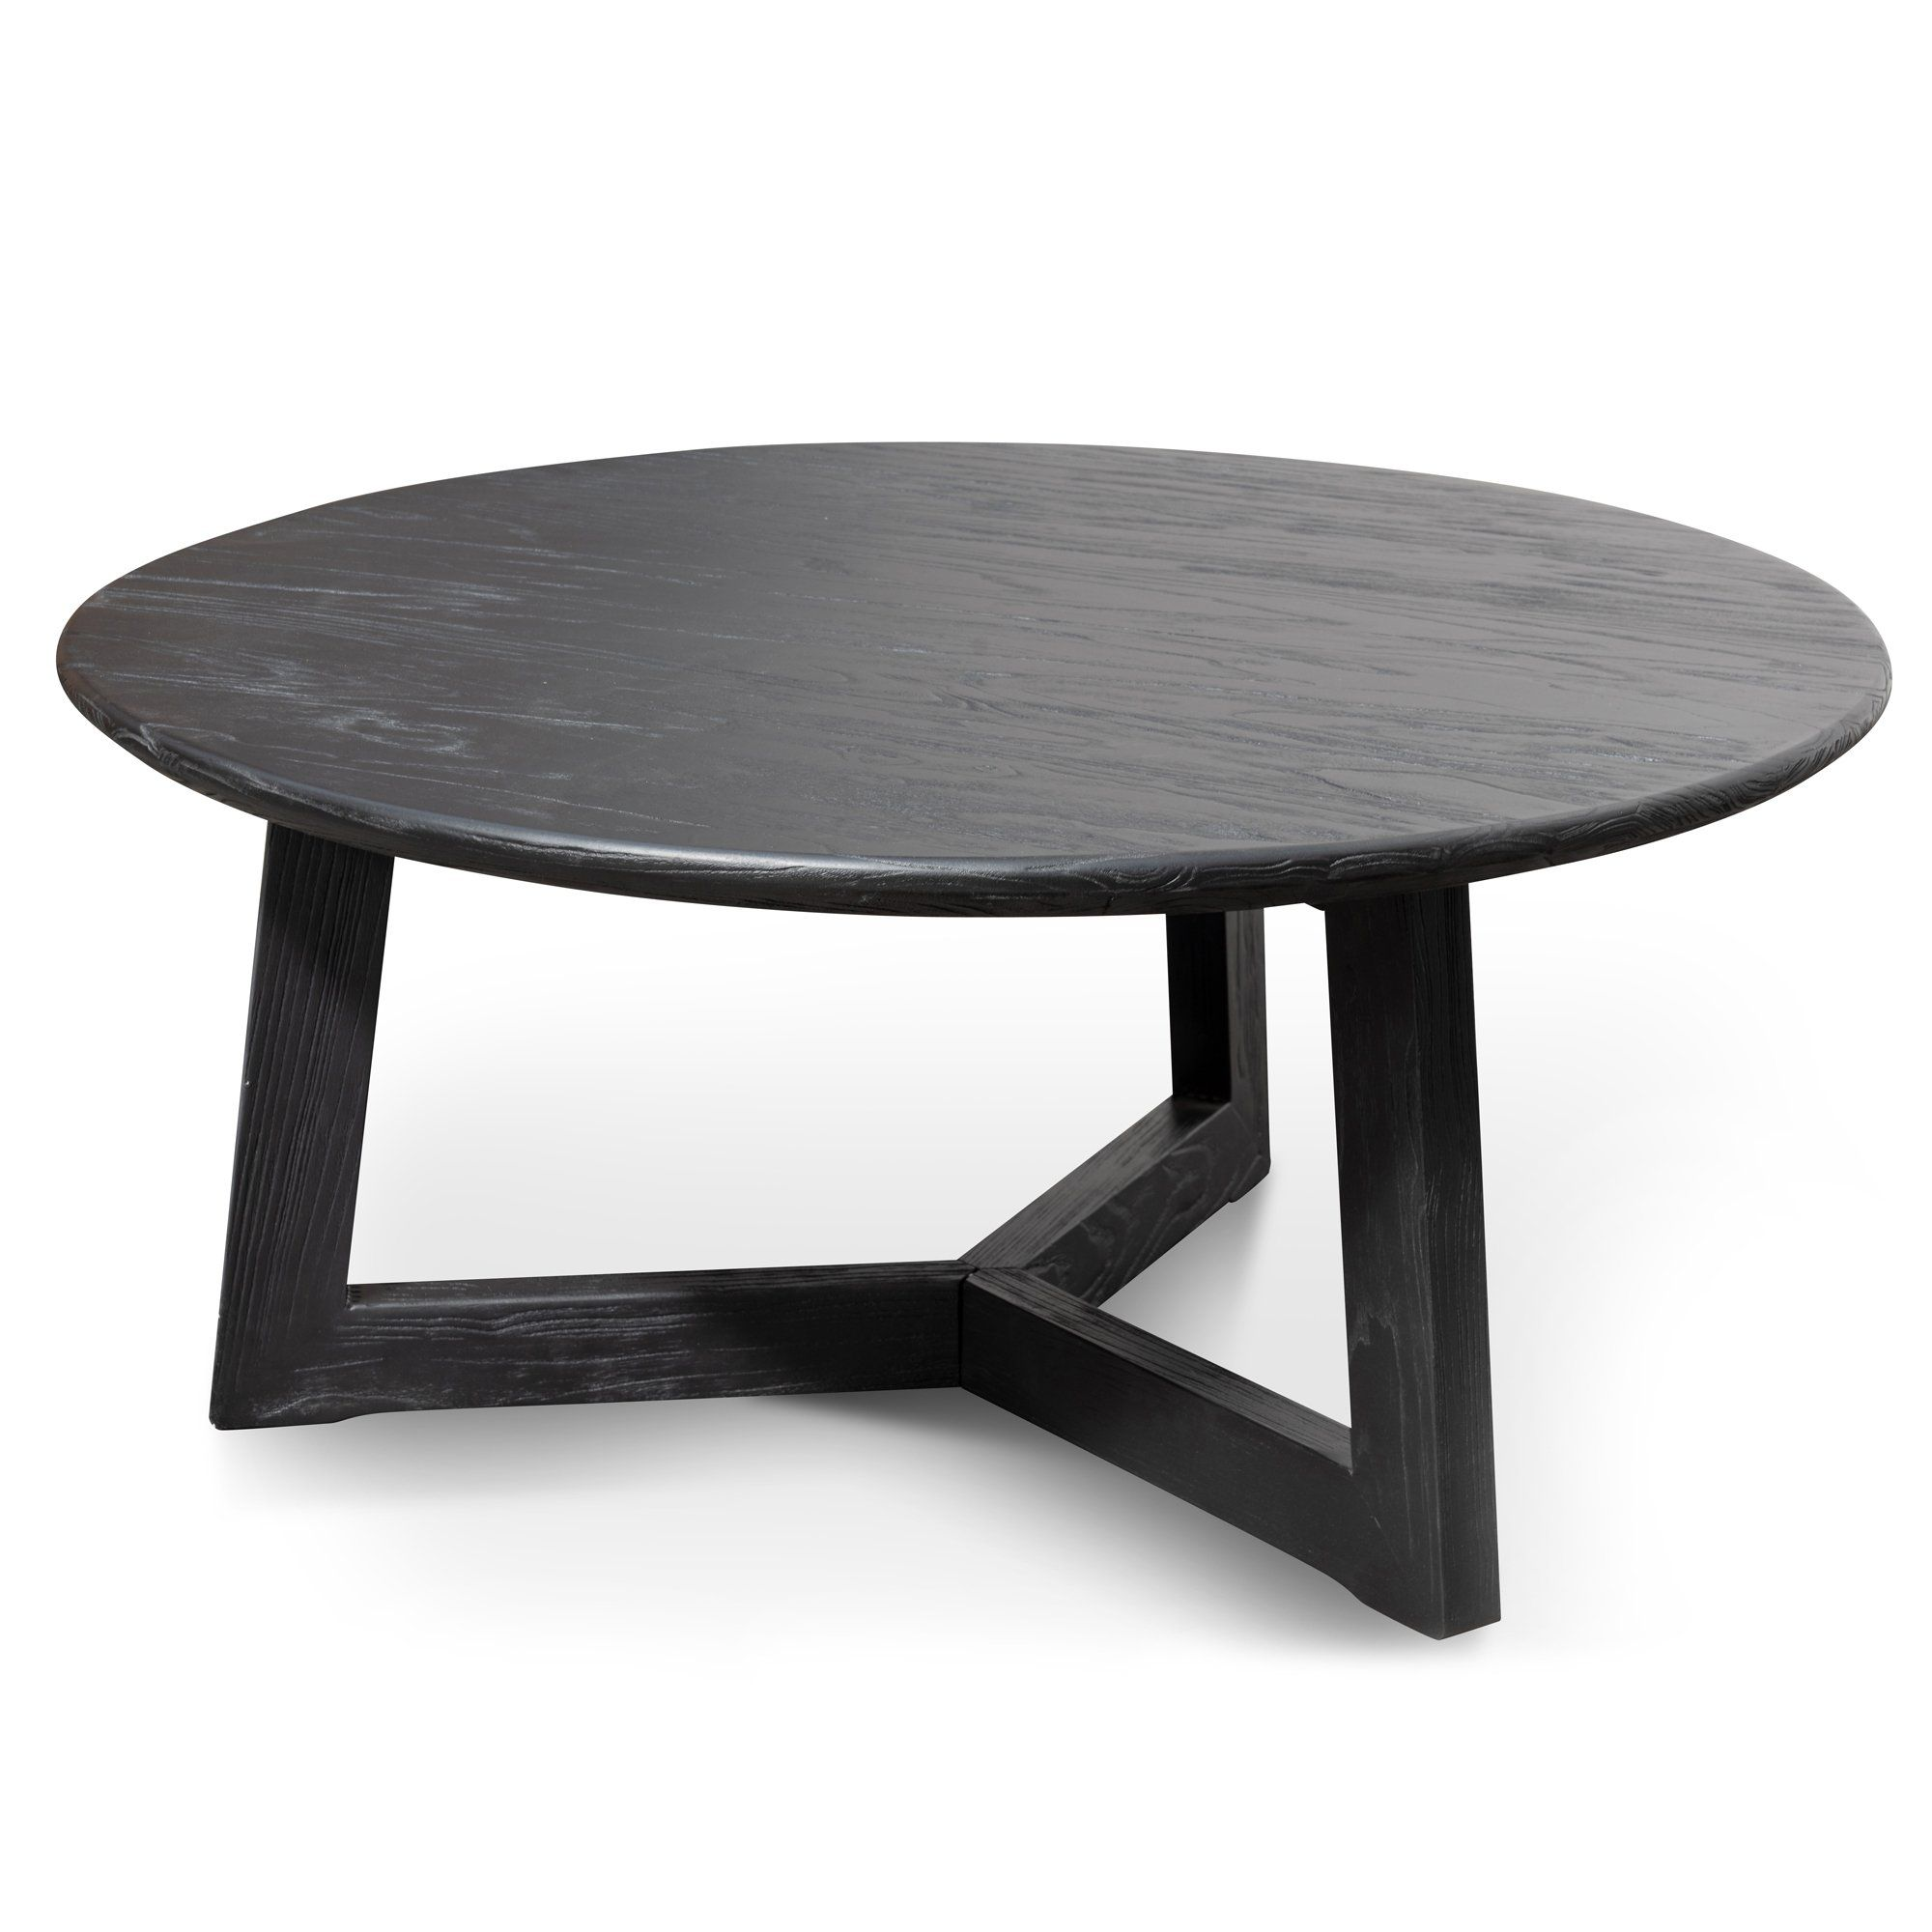 Ellias 1m Wooden Round Coffee Table Black Interior Secrets